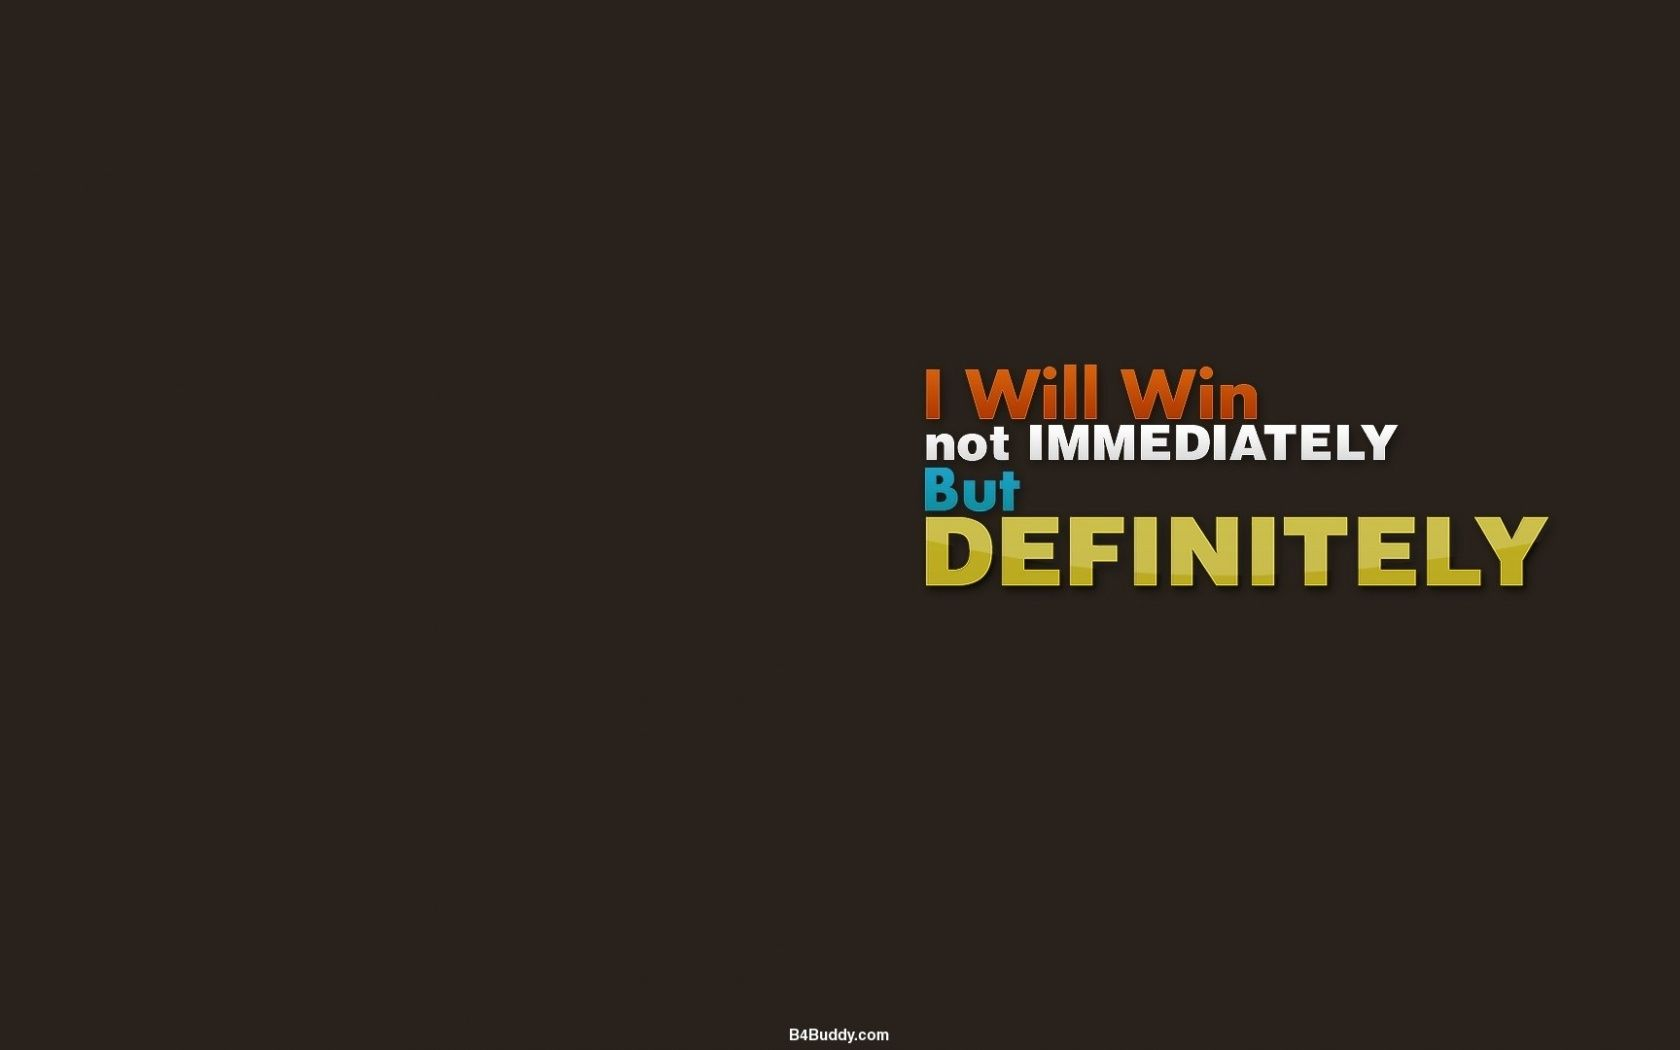 Best Motivational Quotes Wallpapers For Pc Hd